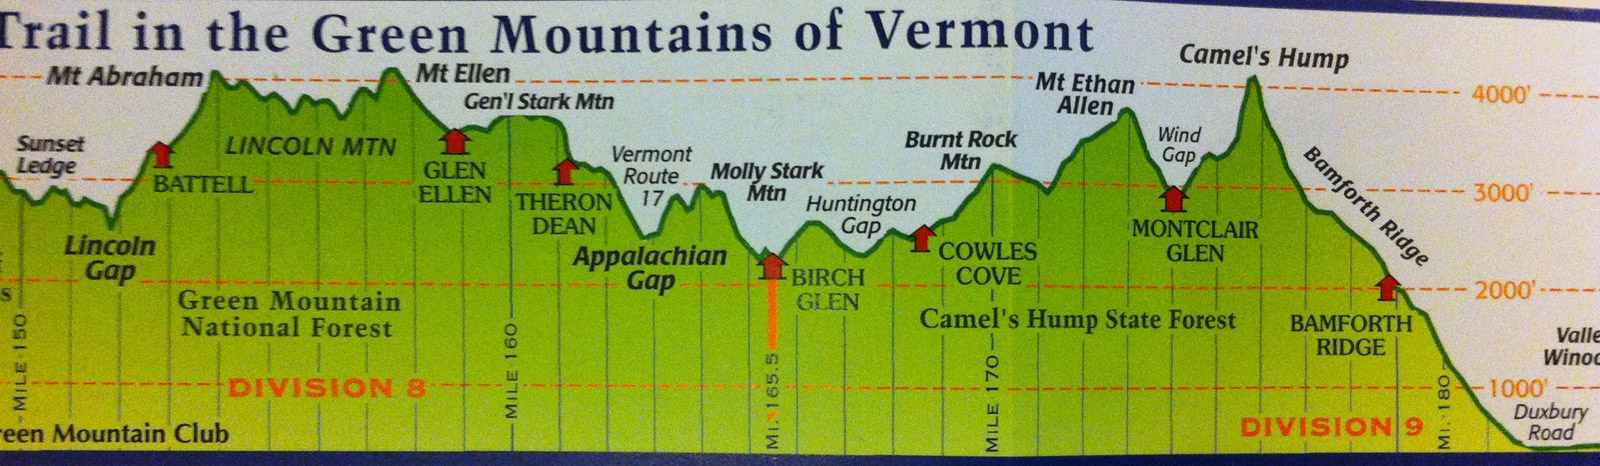 Nikki Kimball takes on the 273-mile Long Trail in Vermont